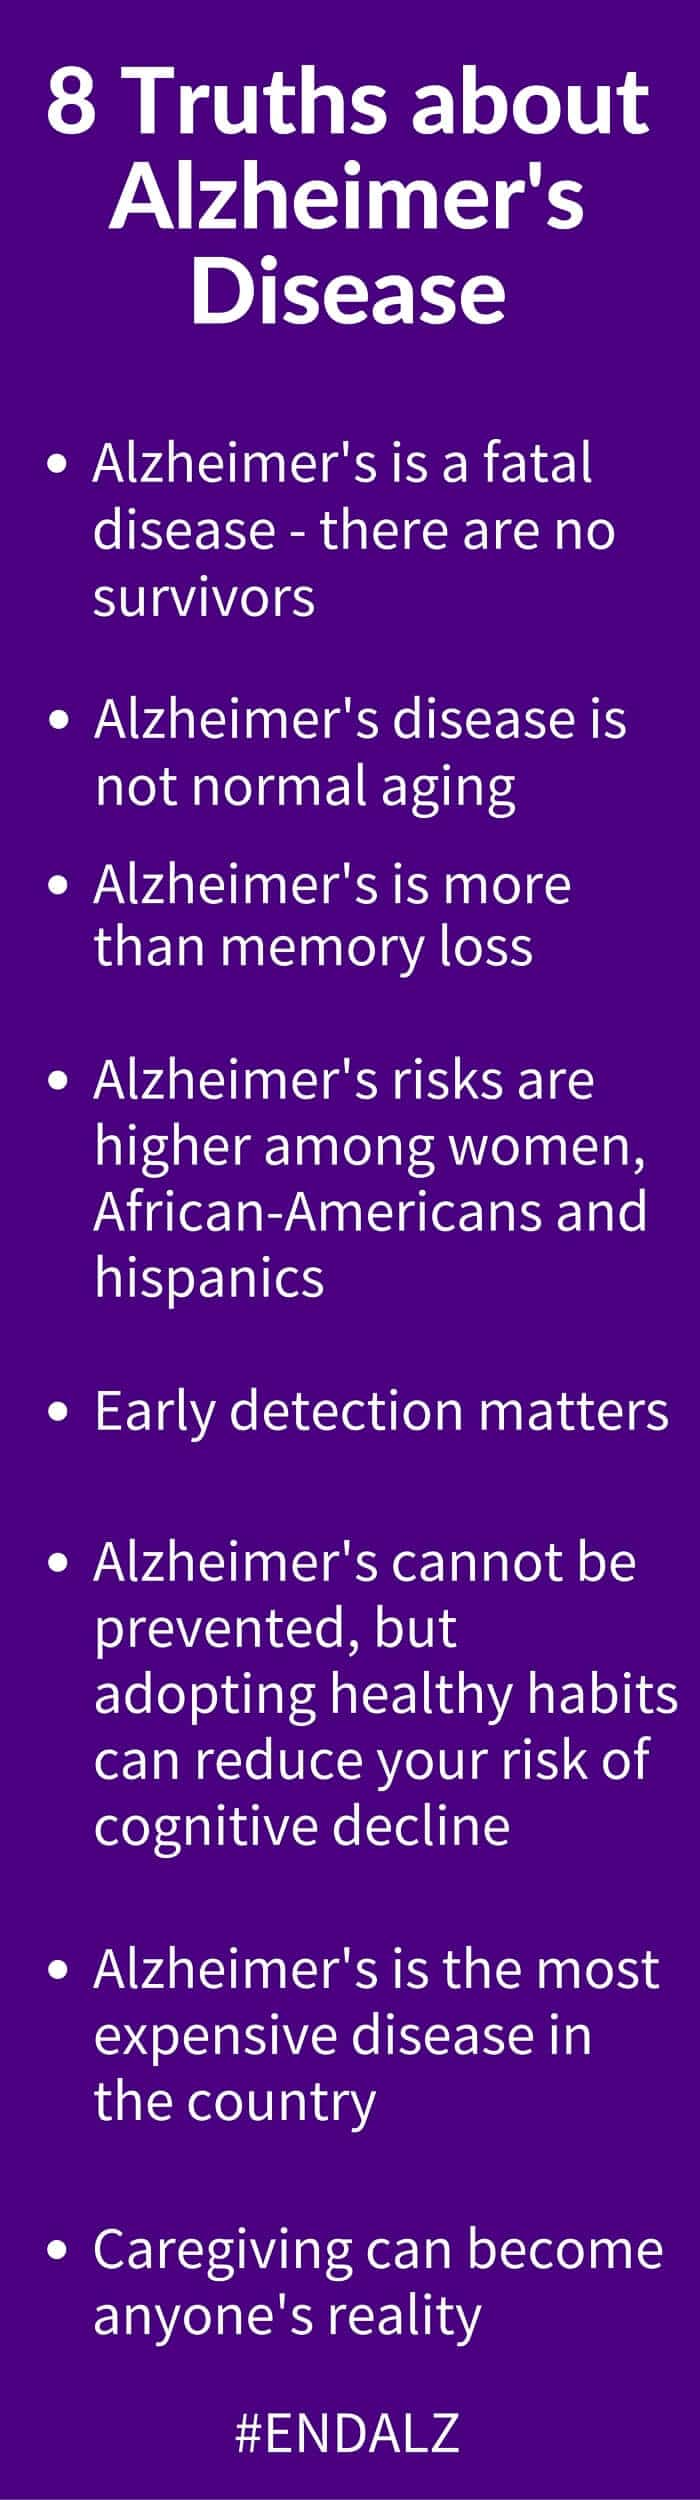 alzheimers disease 5 essay Alzheimer's disease is usually diagnosed based on the person's medical history, history from relatives, and behavioural observations the presence of characteristic neurological and neuropsychological features and the absence of alternative conditions is supportive.